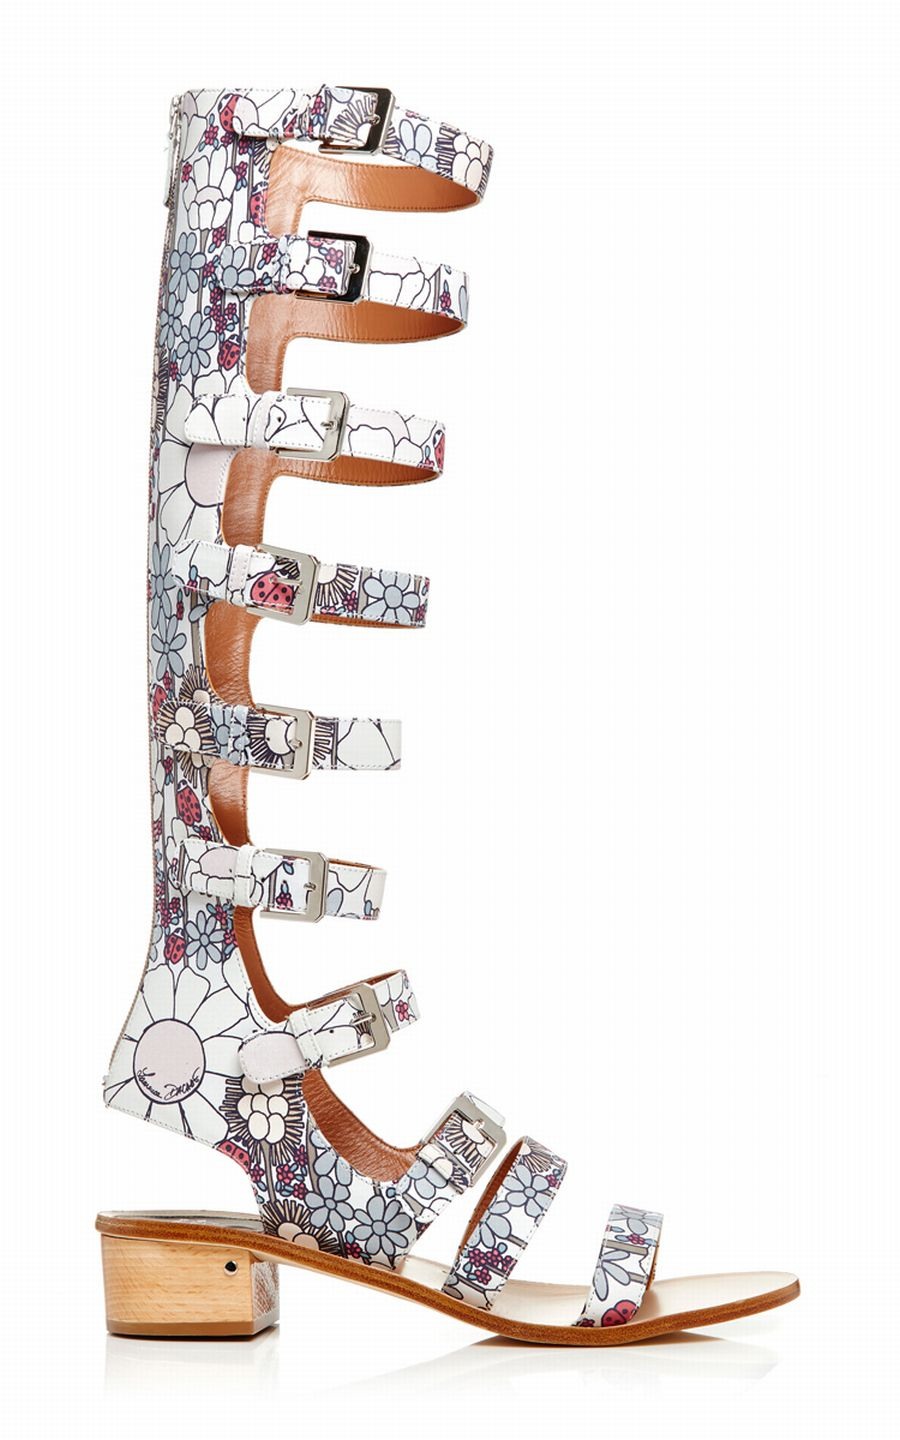 Laurence-Dacade-Halle-Gladiator-Sandal-41-11-Leather-Flat-Shoe-Boot-Designer_7705A.jpg